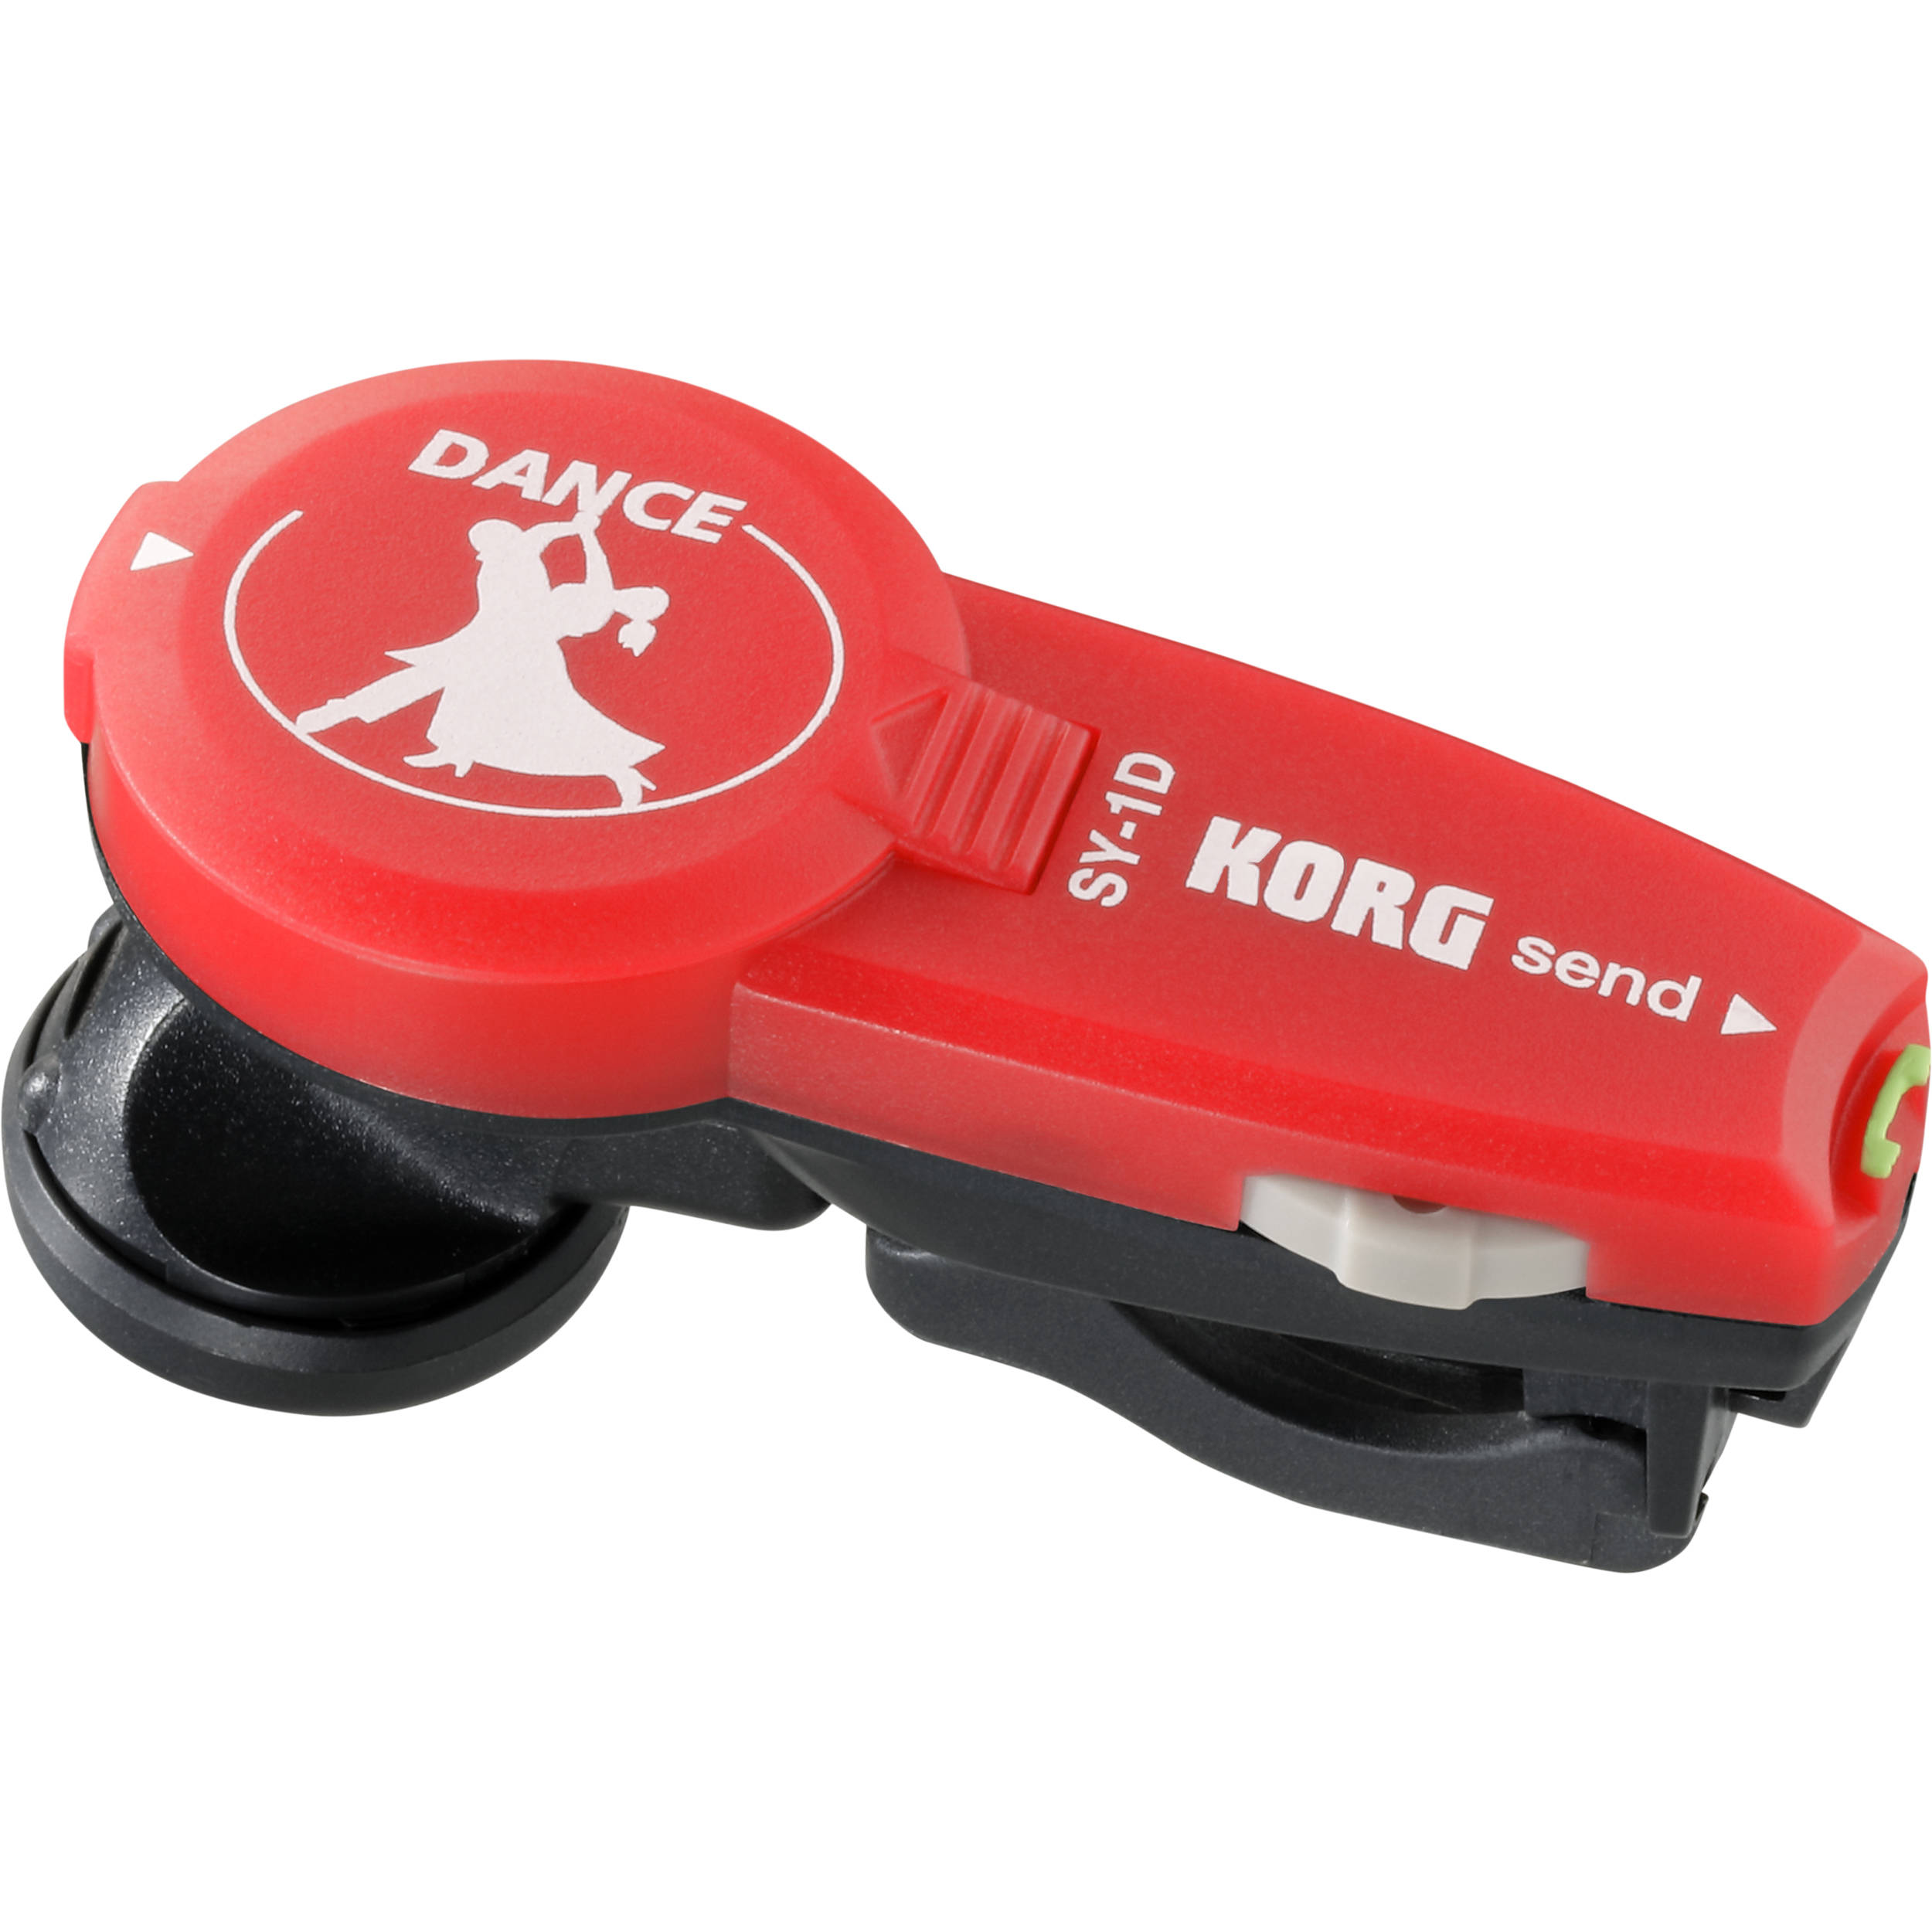 Korg SyncDancing Synchronized Dance Music Player